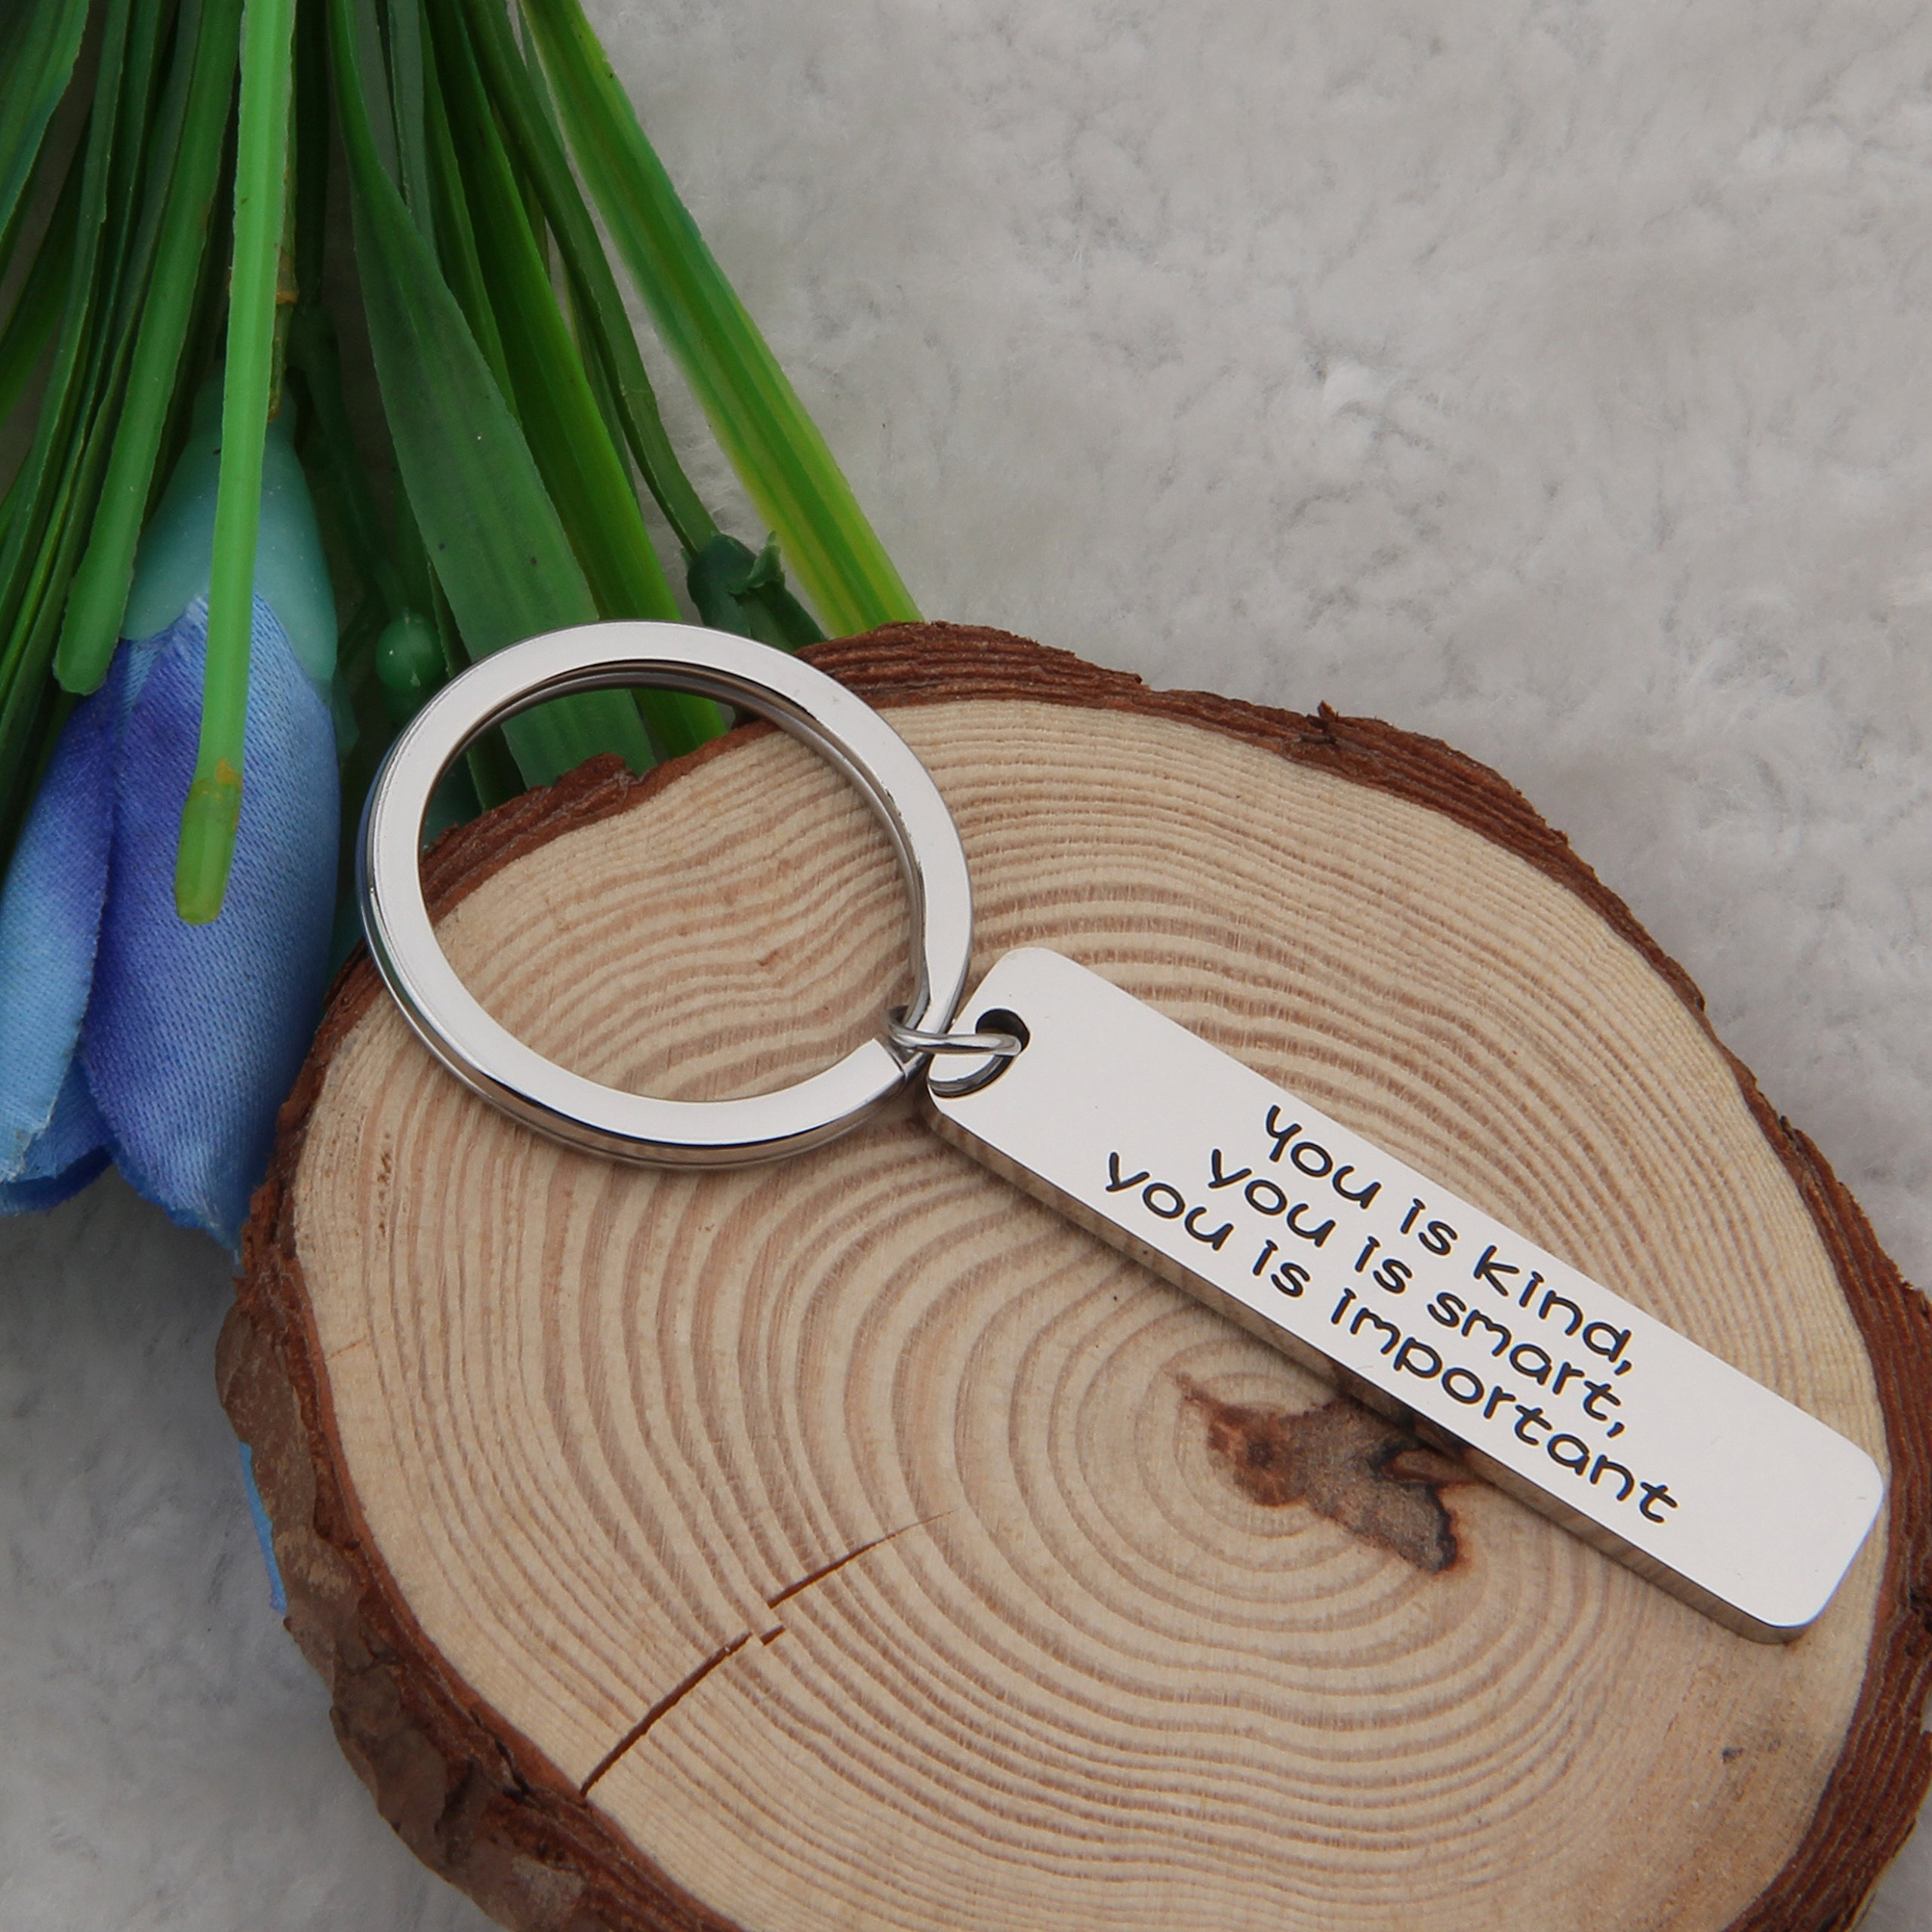 FEELMEM Inspirational Keychain You is Kind You is Smart You is Important Keychain Family Friends Jewelry Back to School Gift/Graduation Gift/Travel Gift (Silver) by FEELMEM (Image #4)